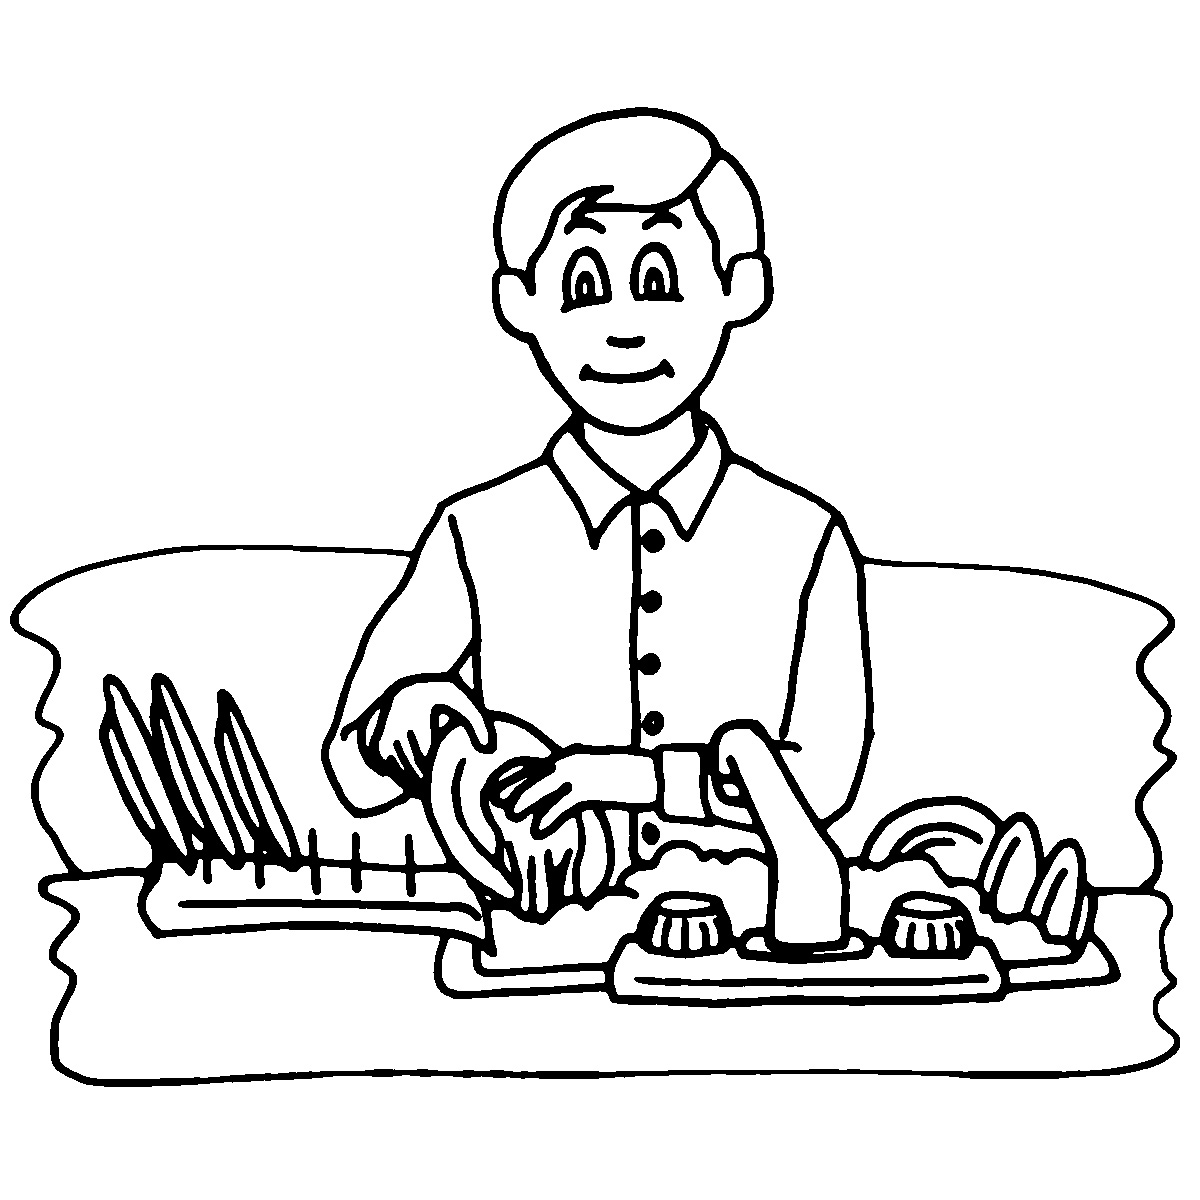 Dish clipart hand clipart. Doing dishes chores